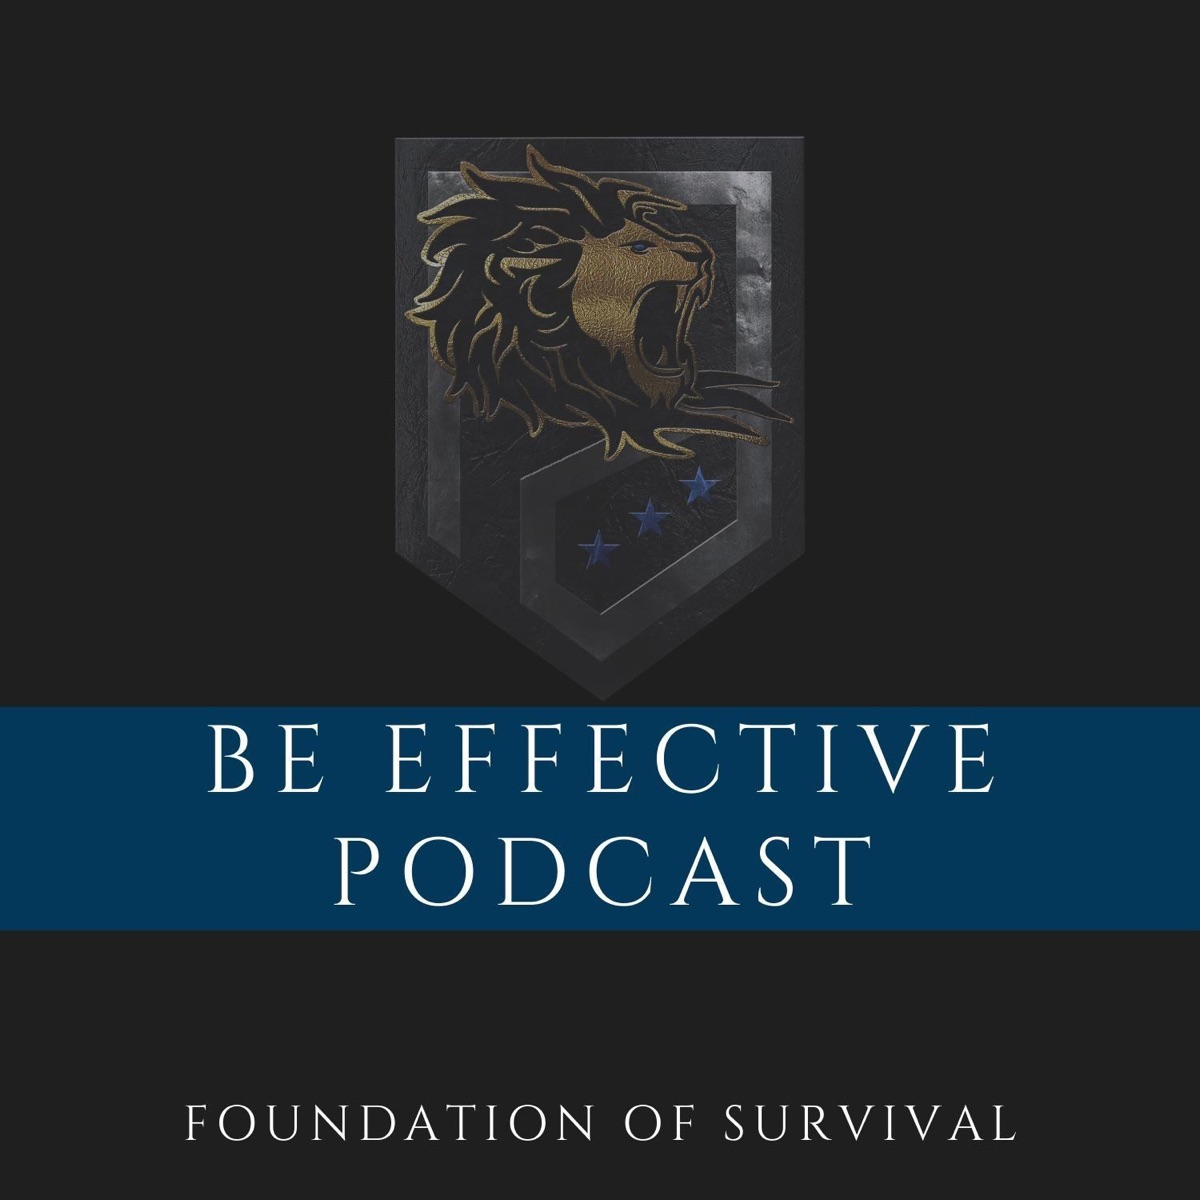 Be Effective Podcast